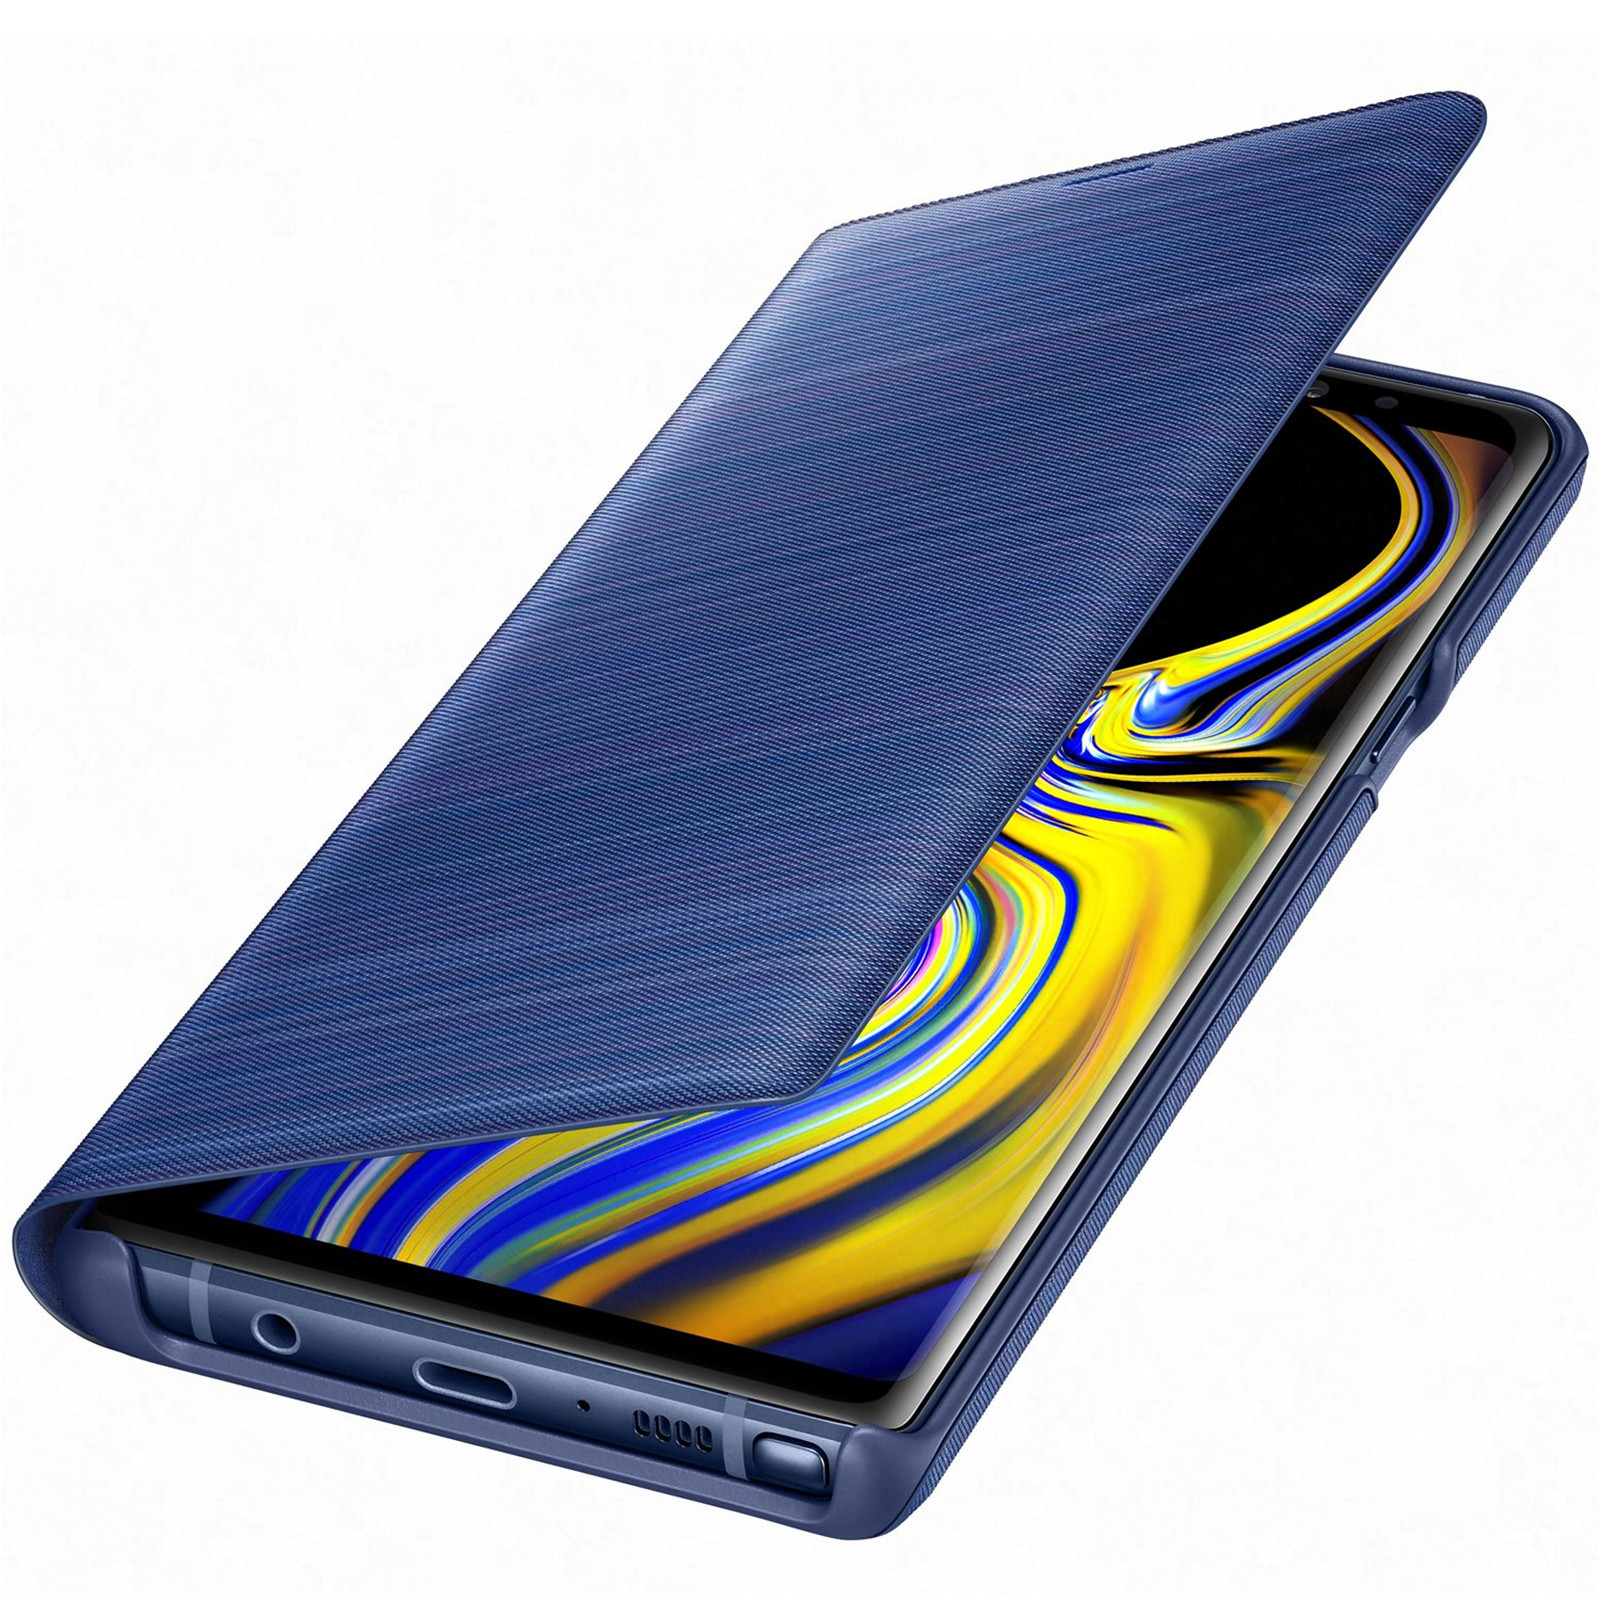 buy online c8754 e8a2b Buy the Samsung Galaxy Note 9 LED View Flip Cover- Blue,Light Alerts,LED...  ( EF-NN960PLEGWW ) online